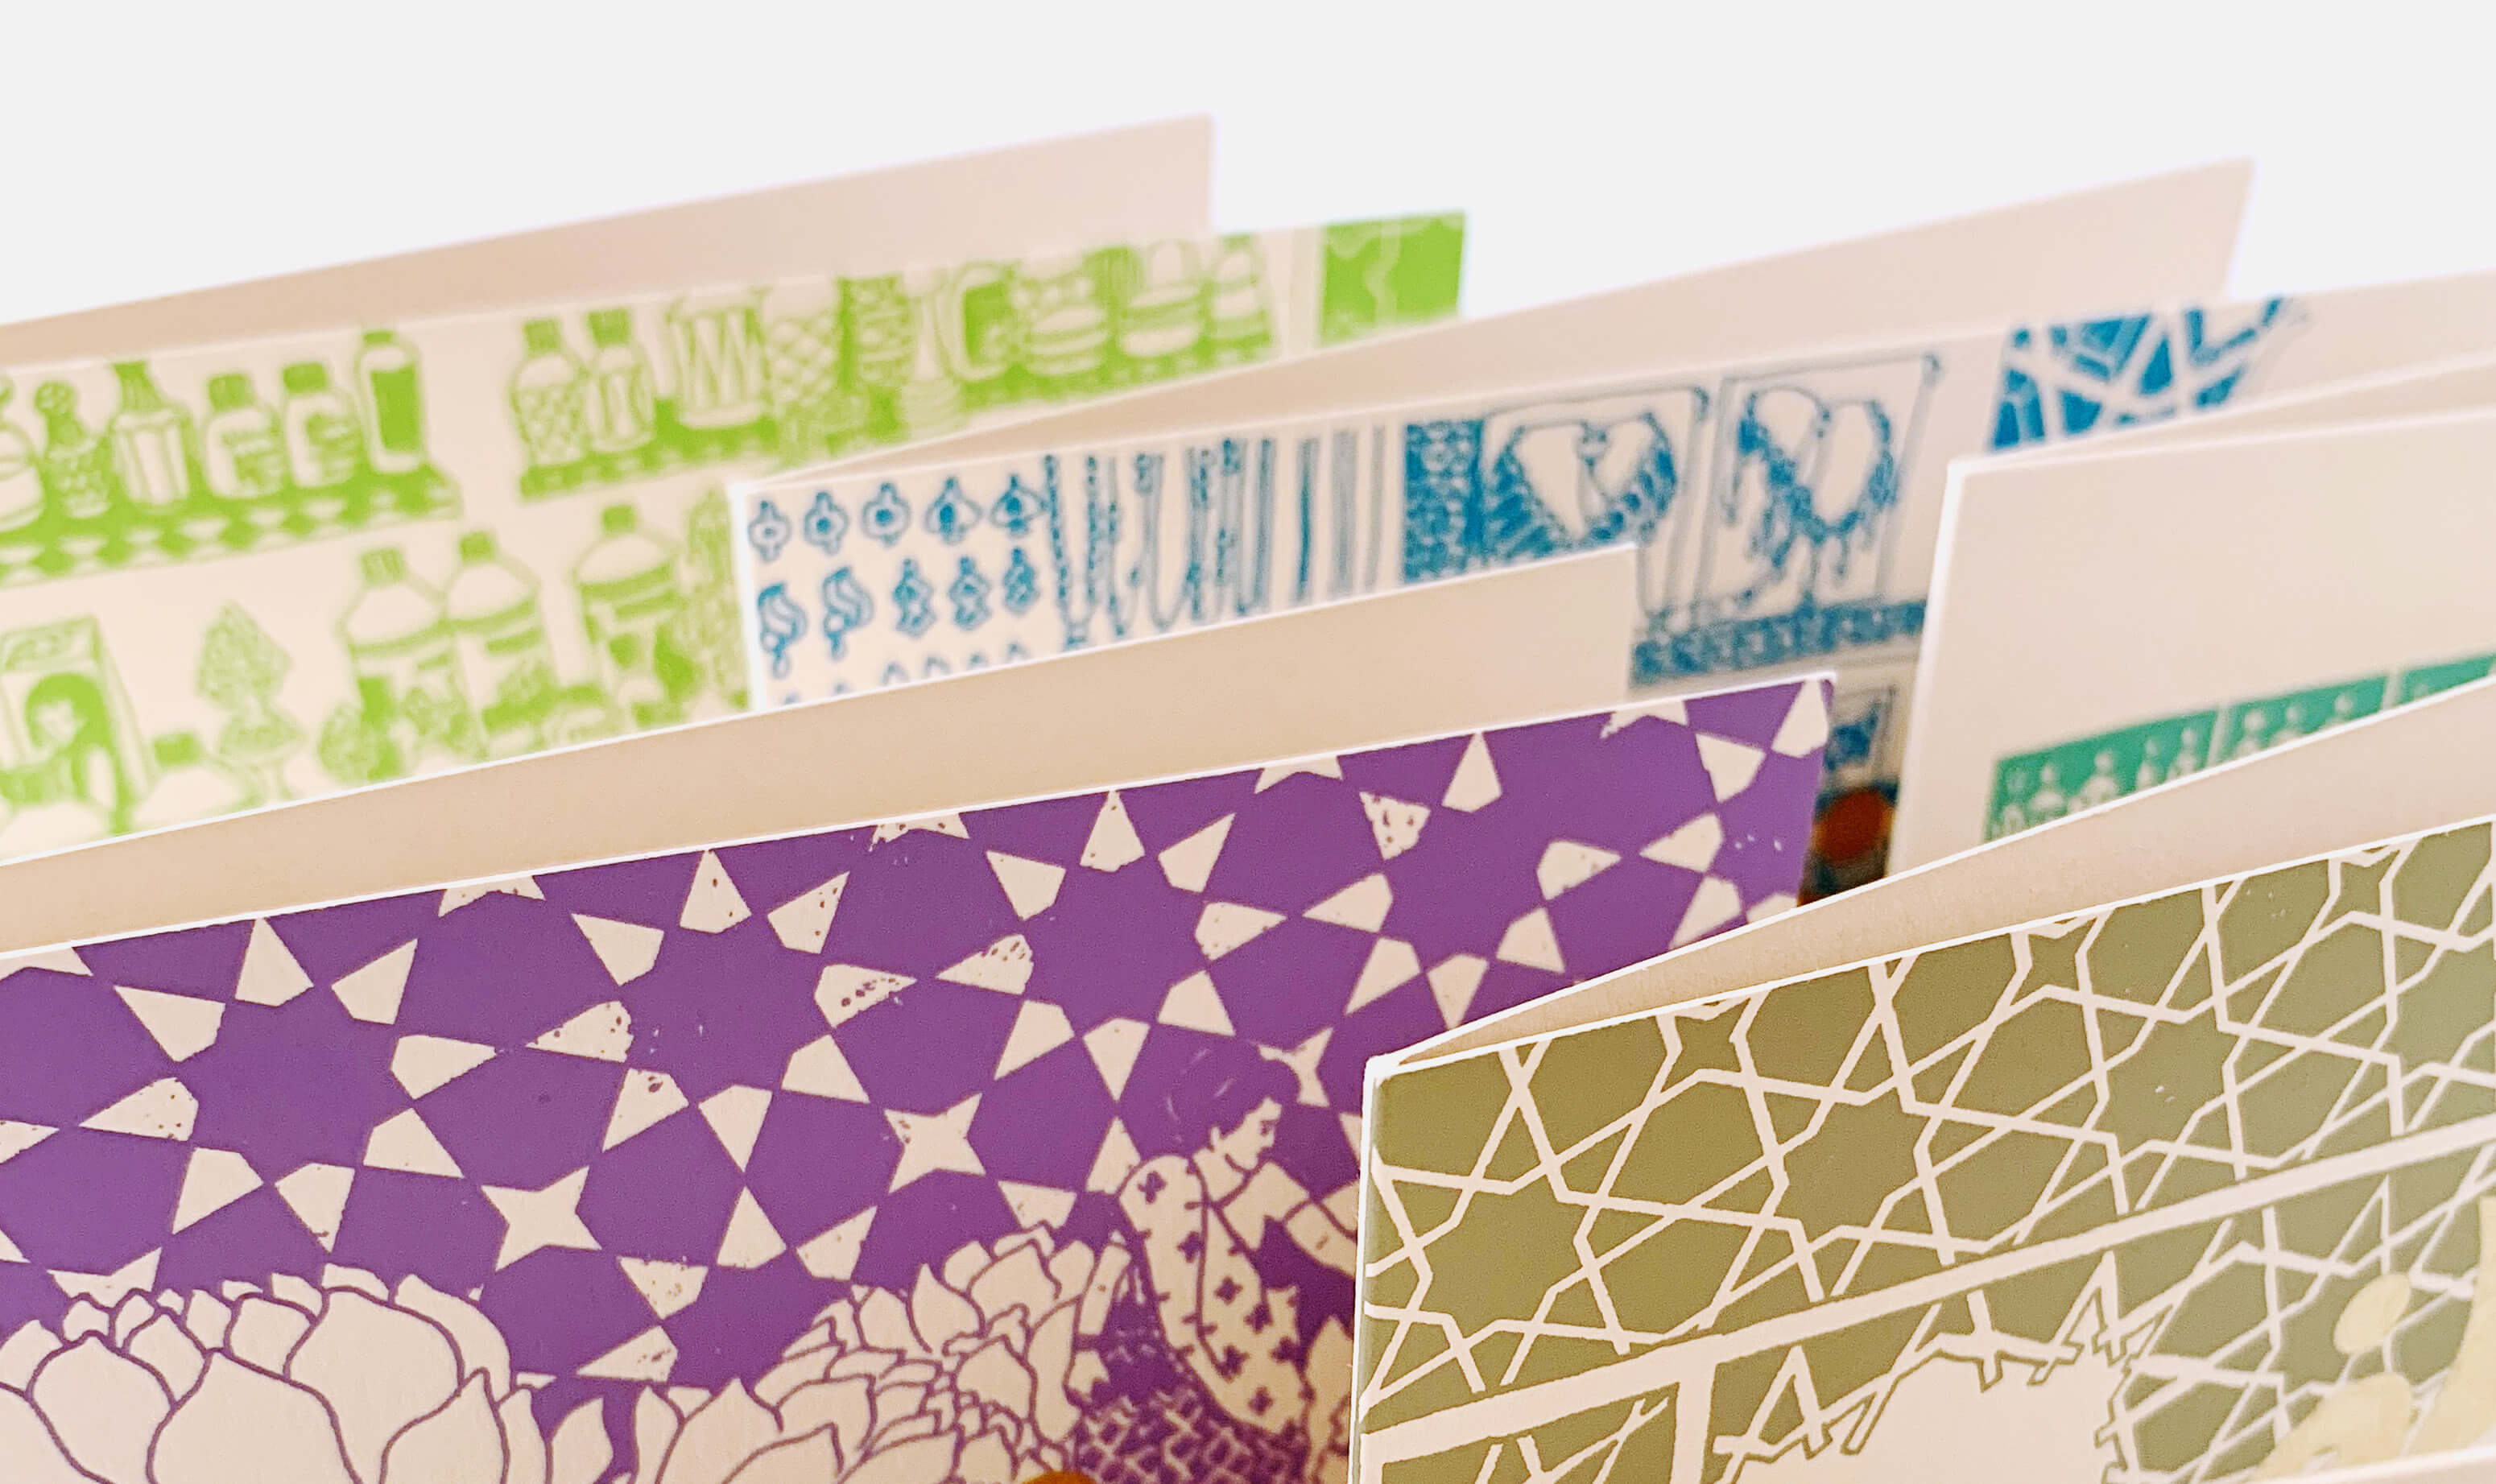 Multiple greeting cards viewed from top in different pastels shades and gold Urdu calligraphy